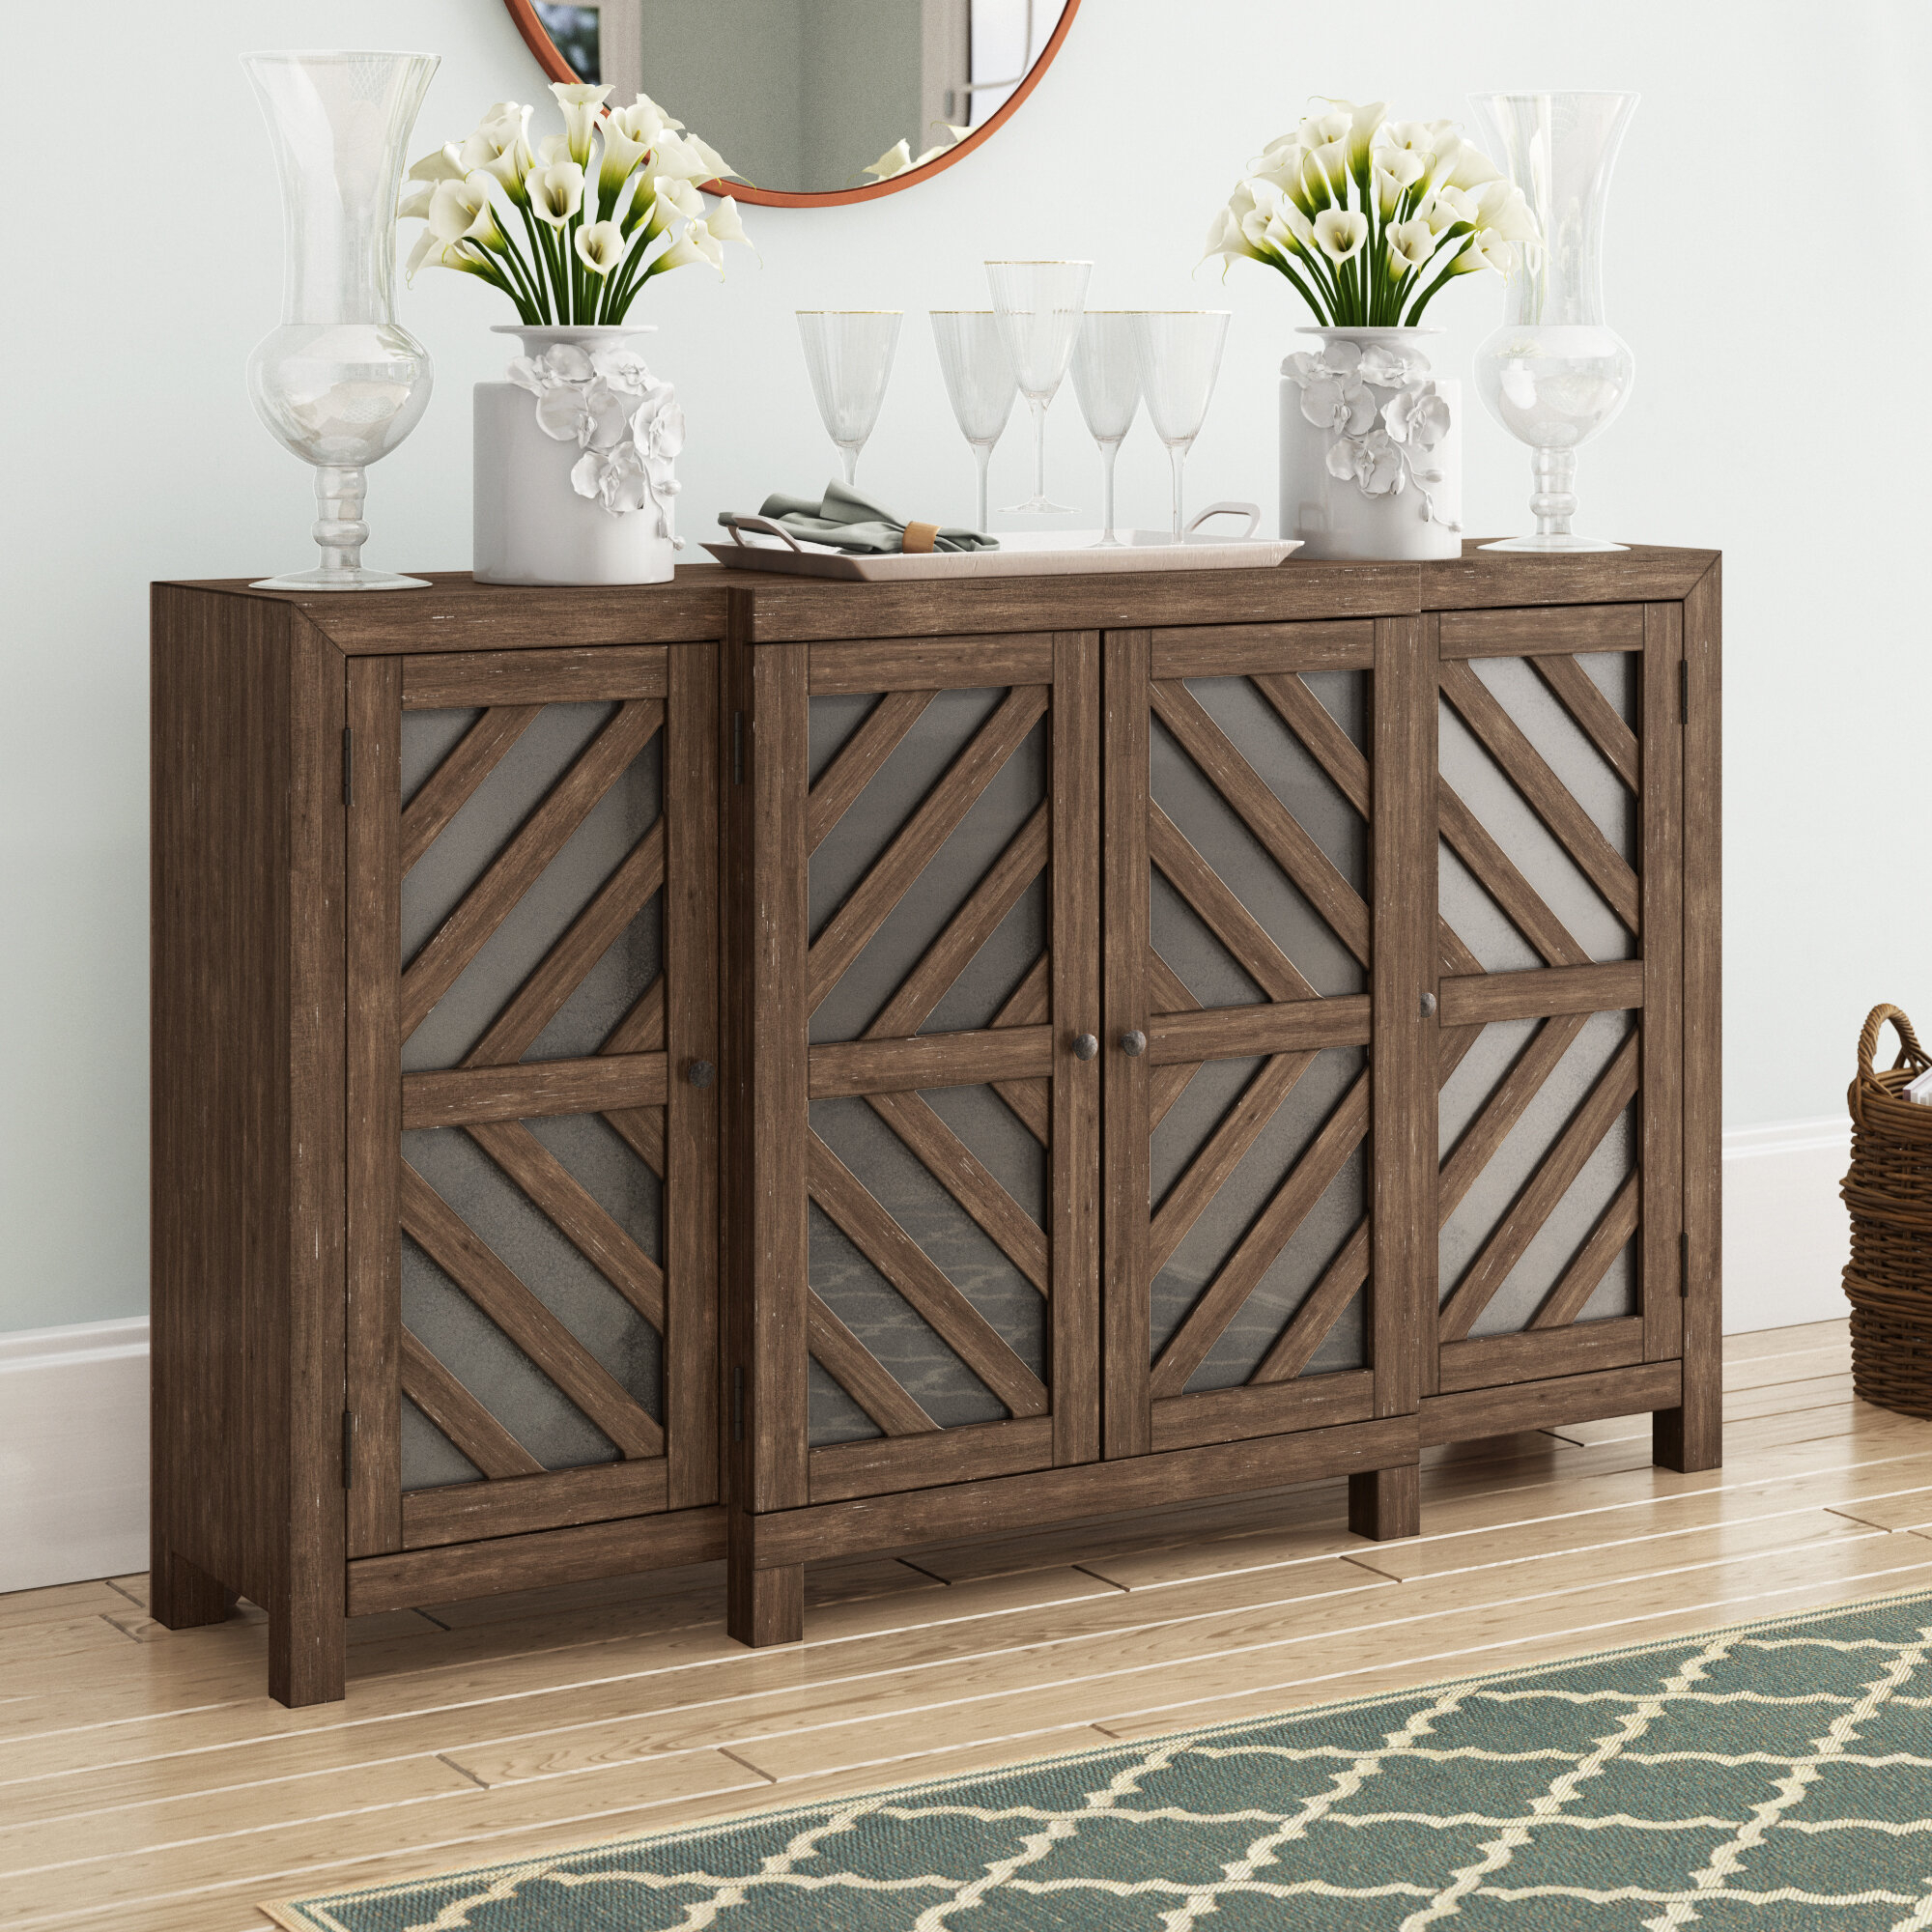 60 Inch Credenza | Wayfair Pertaining To Chaffins Sideboards (Gallery 17 of 30)